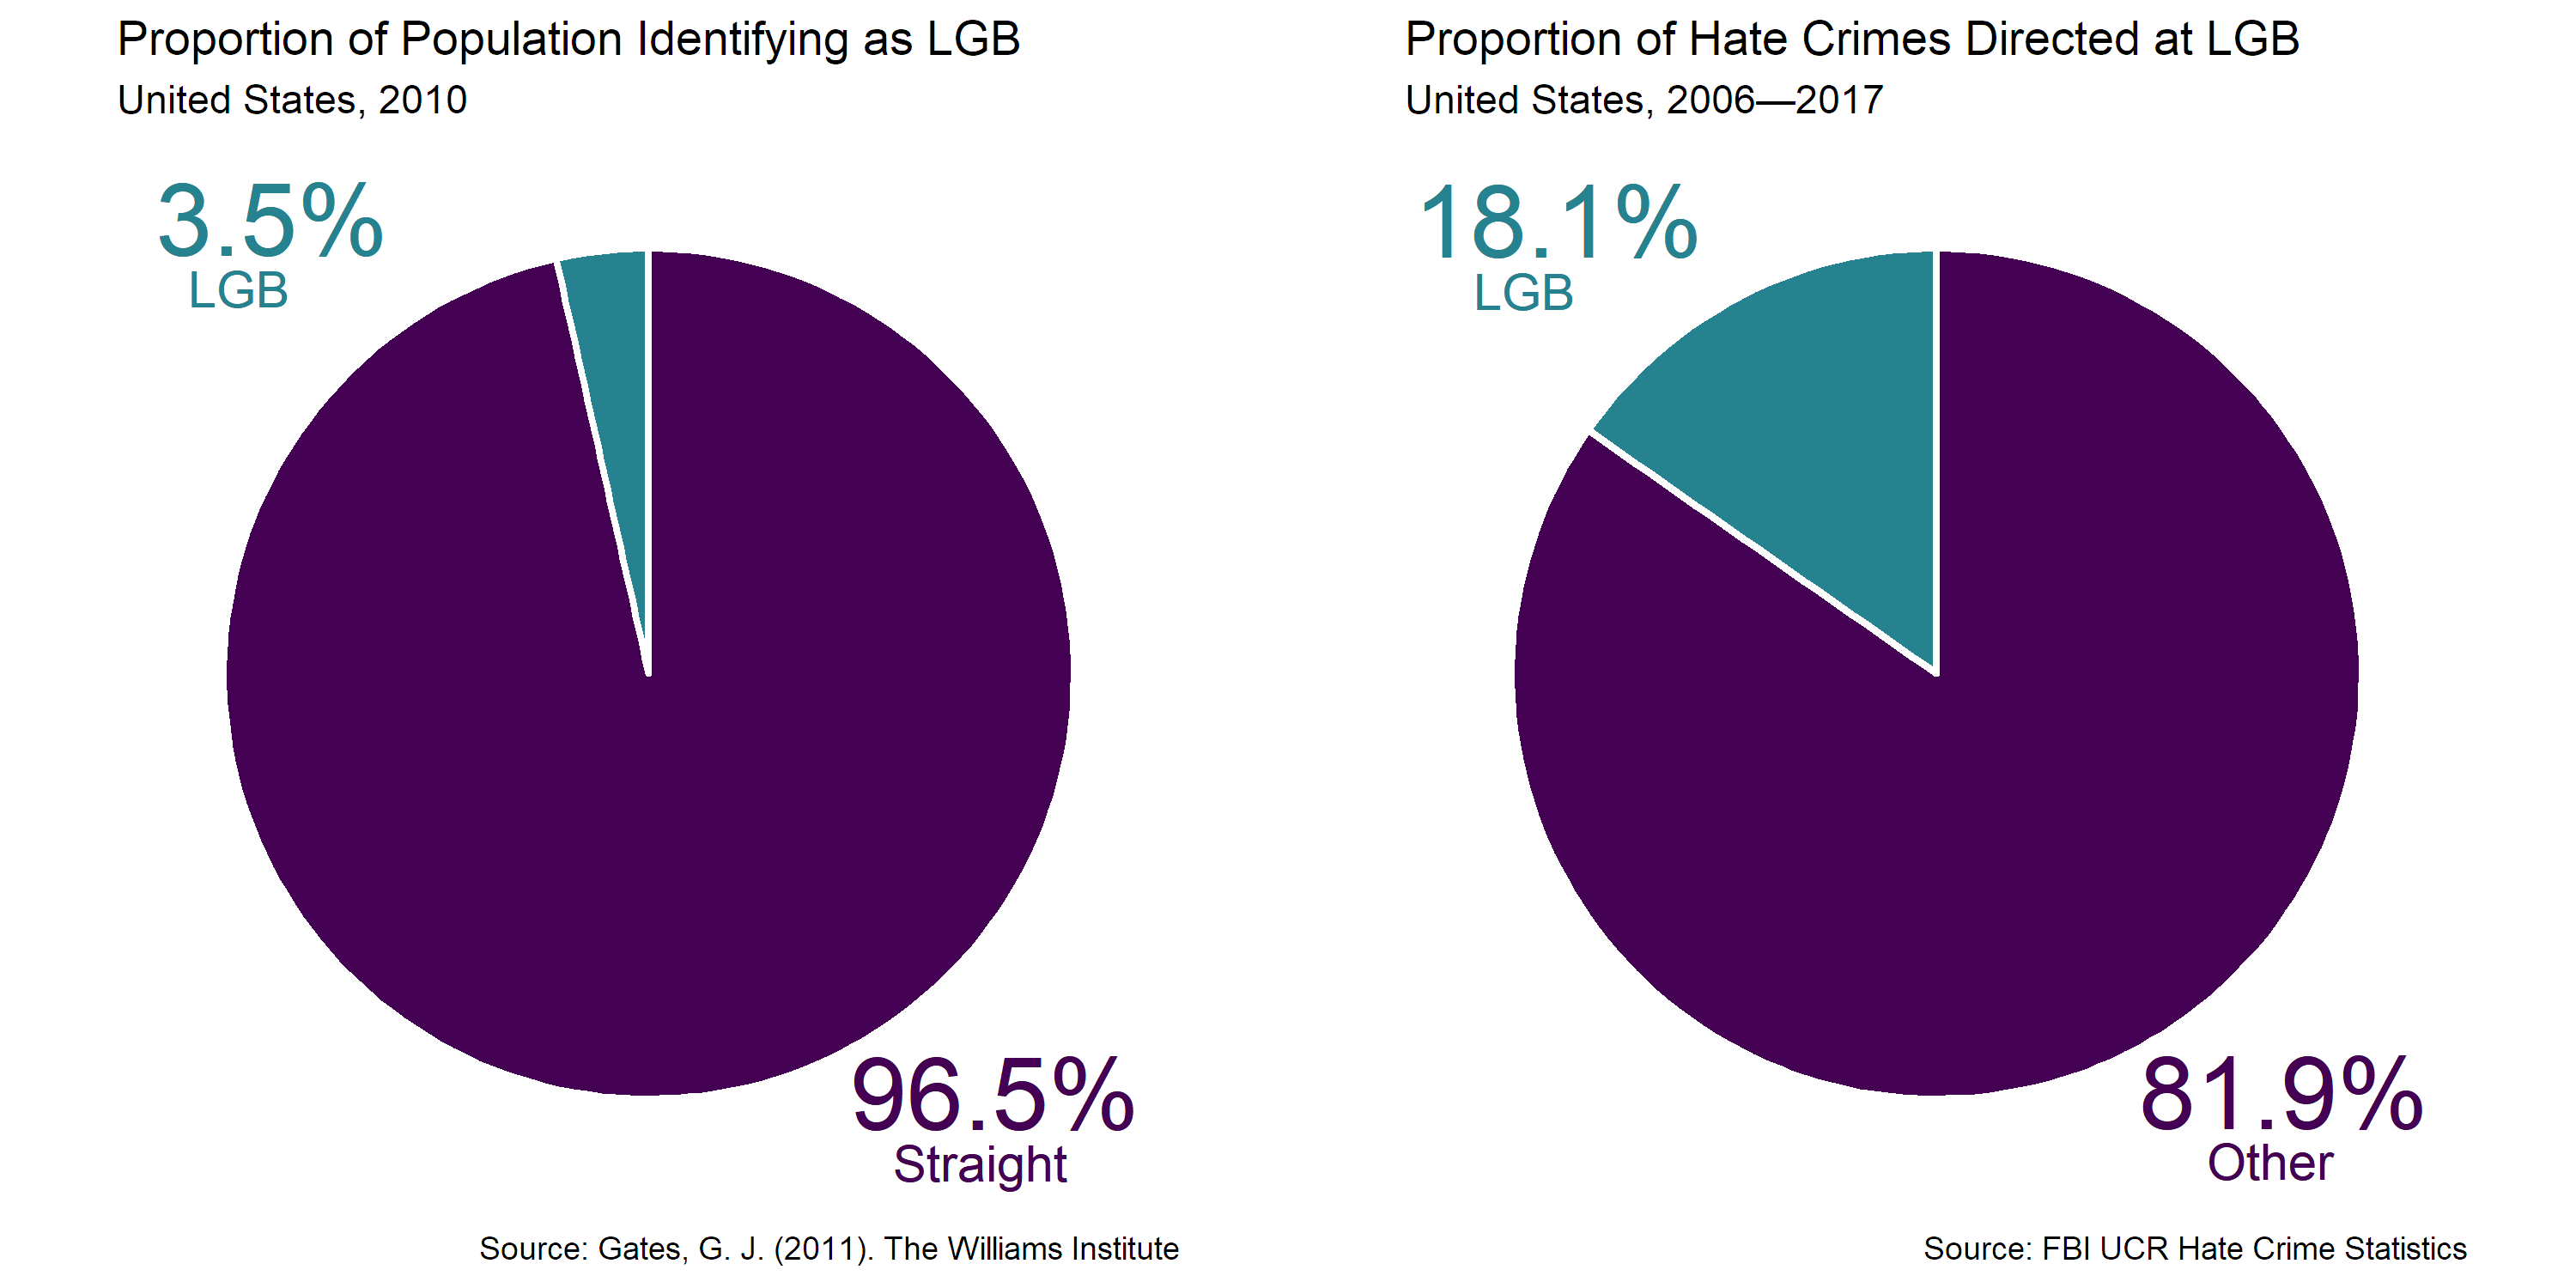 Figure 3. Despite comprising 3.5% of the adult population in the United States, lesbian, gay, and bisexual individuals are the victims of 18.1% of all hate crimes.